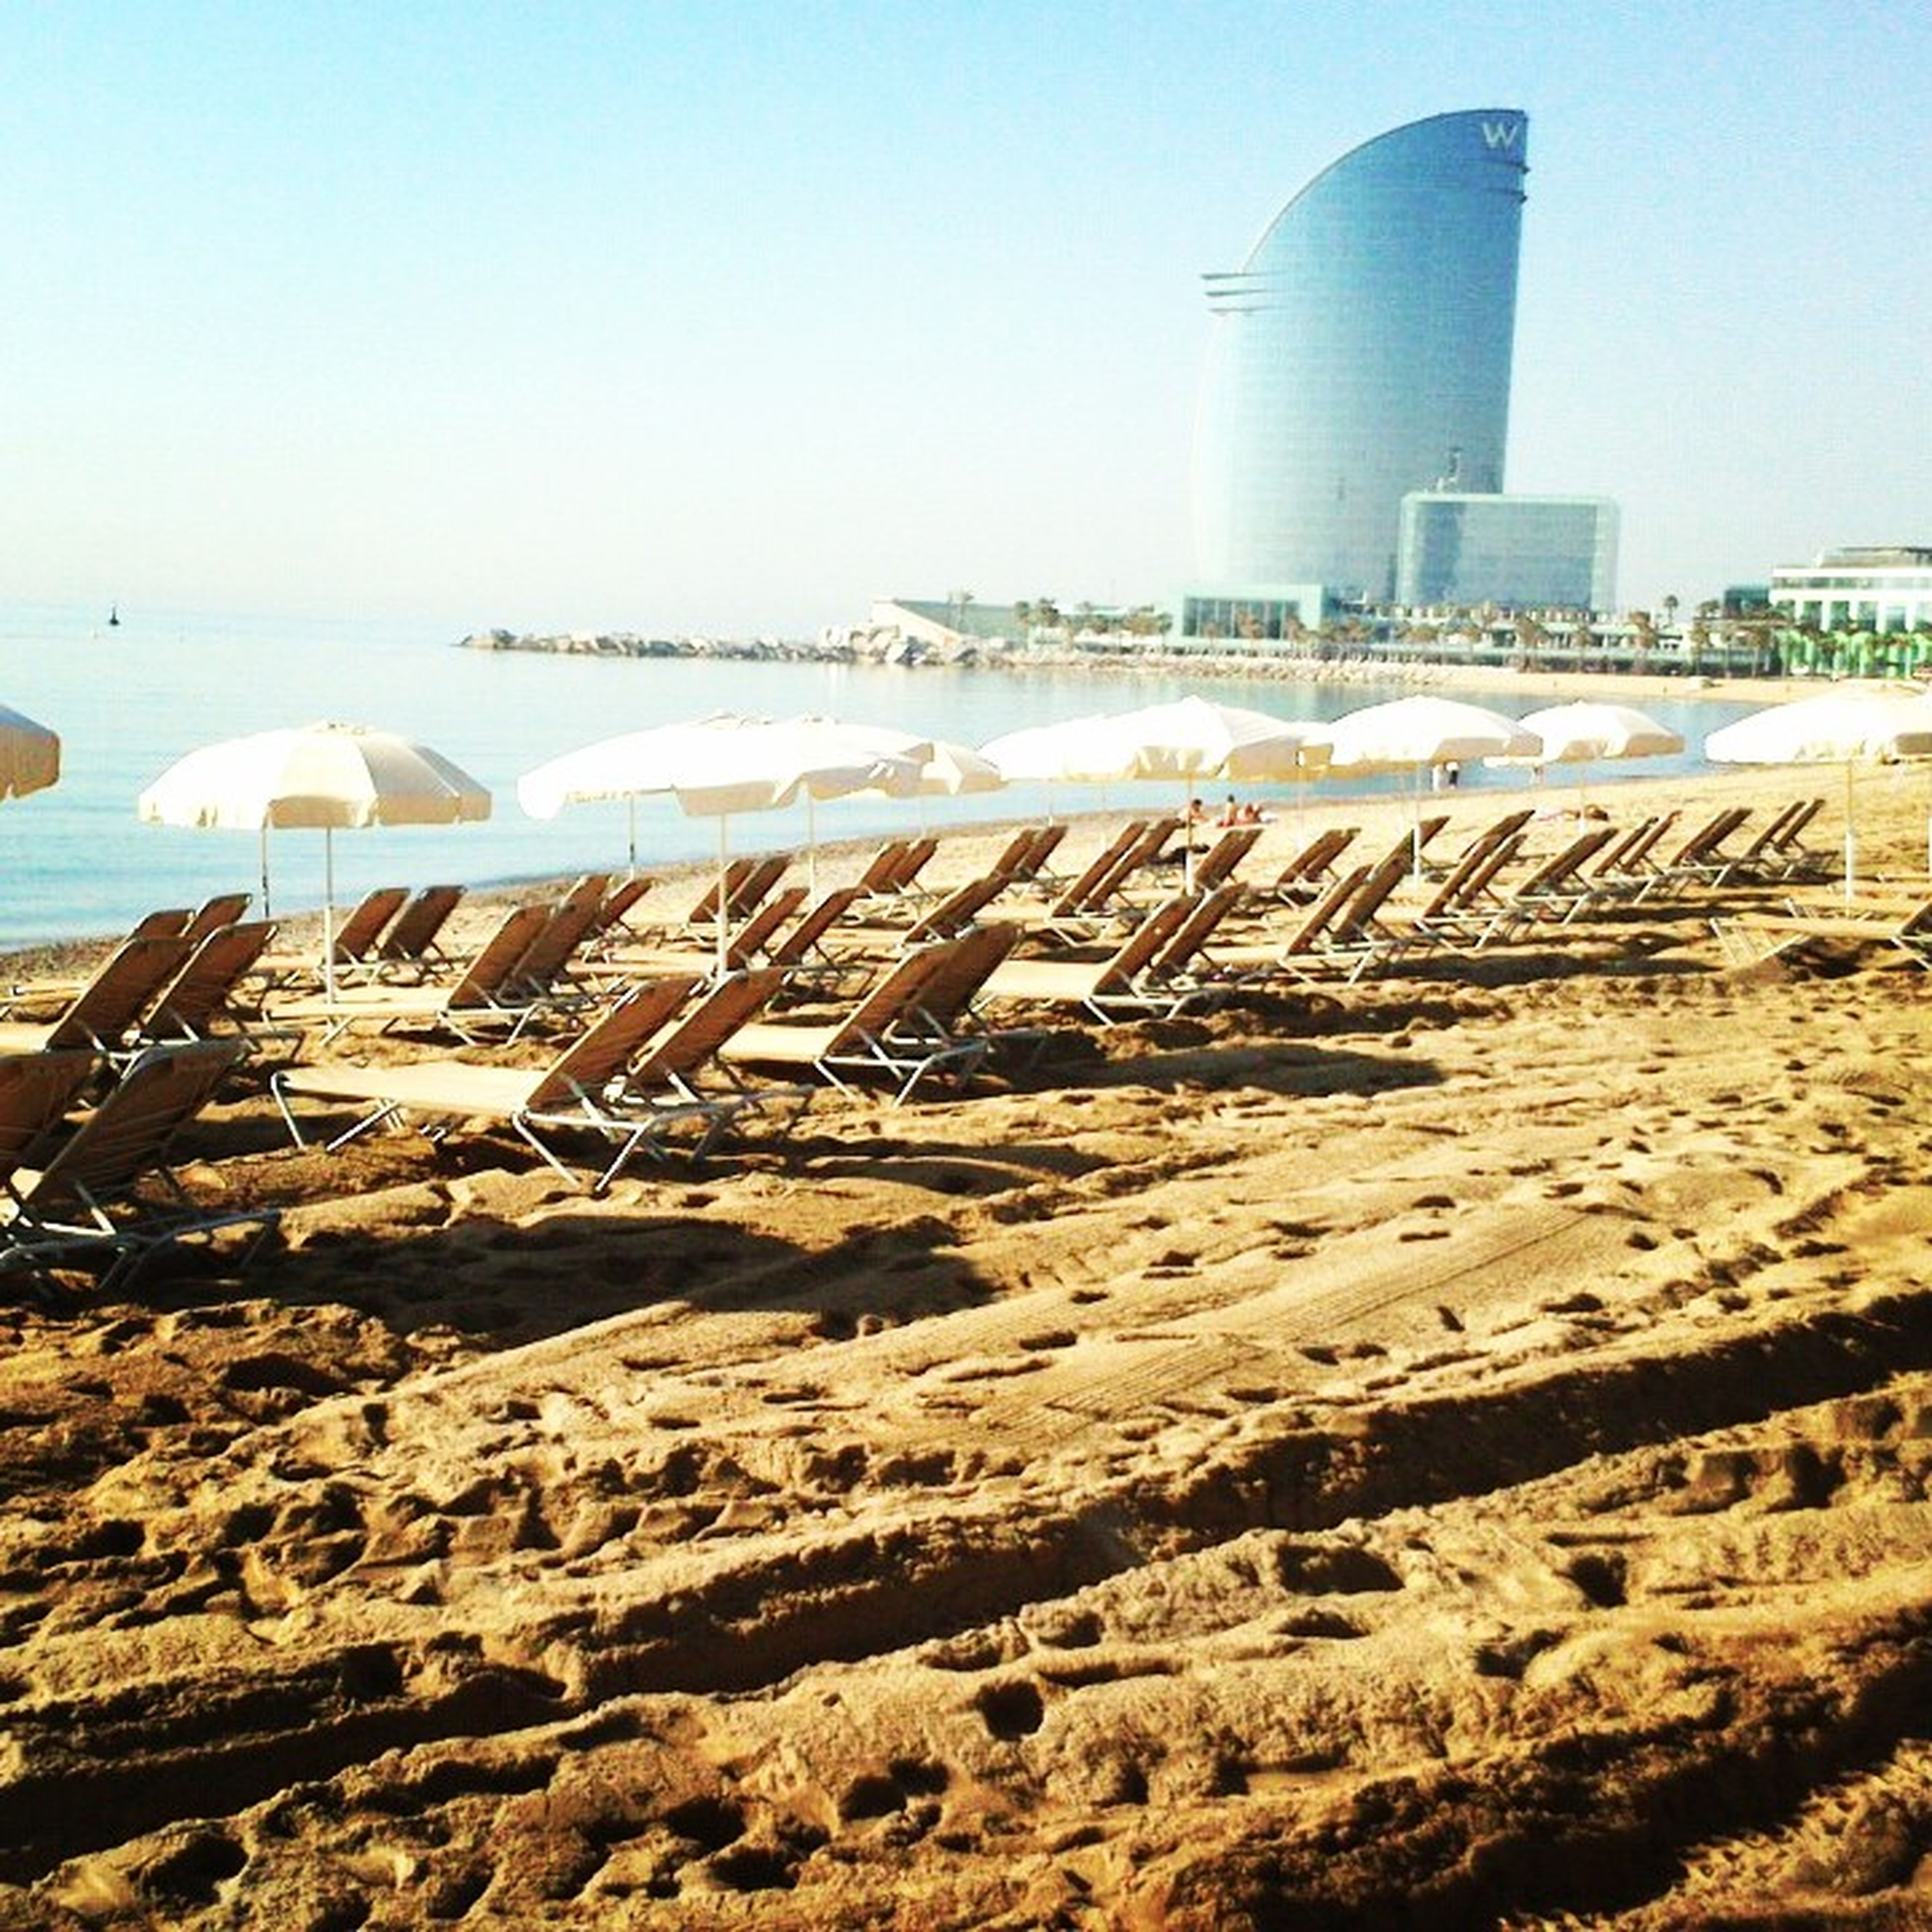 sand, beach, built structure, clear sky, architecture, building exterior, shore, sea, day, sunlight, water, outdoors, copy space, no people, travel destinations, city, incidental people, blue, industry, sky